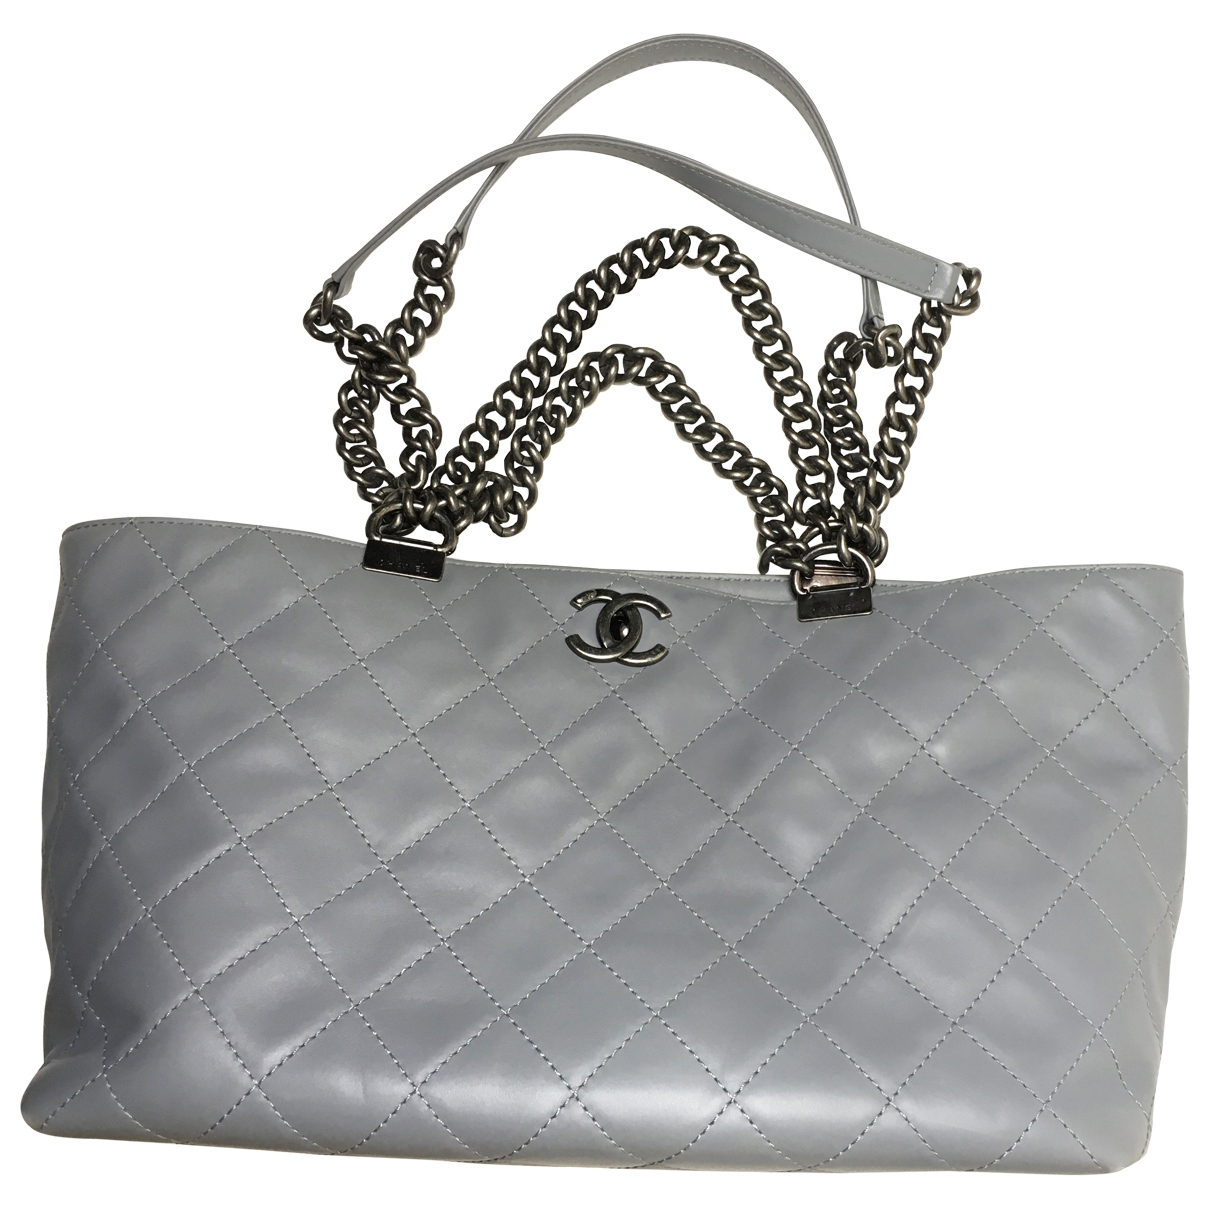 Chanel \N Grey Leather handbag for Women \N